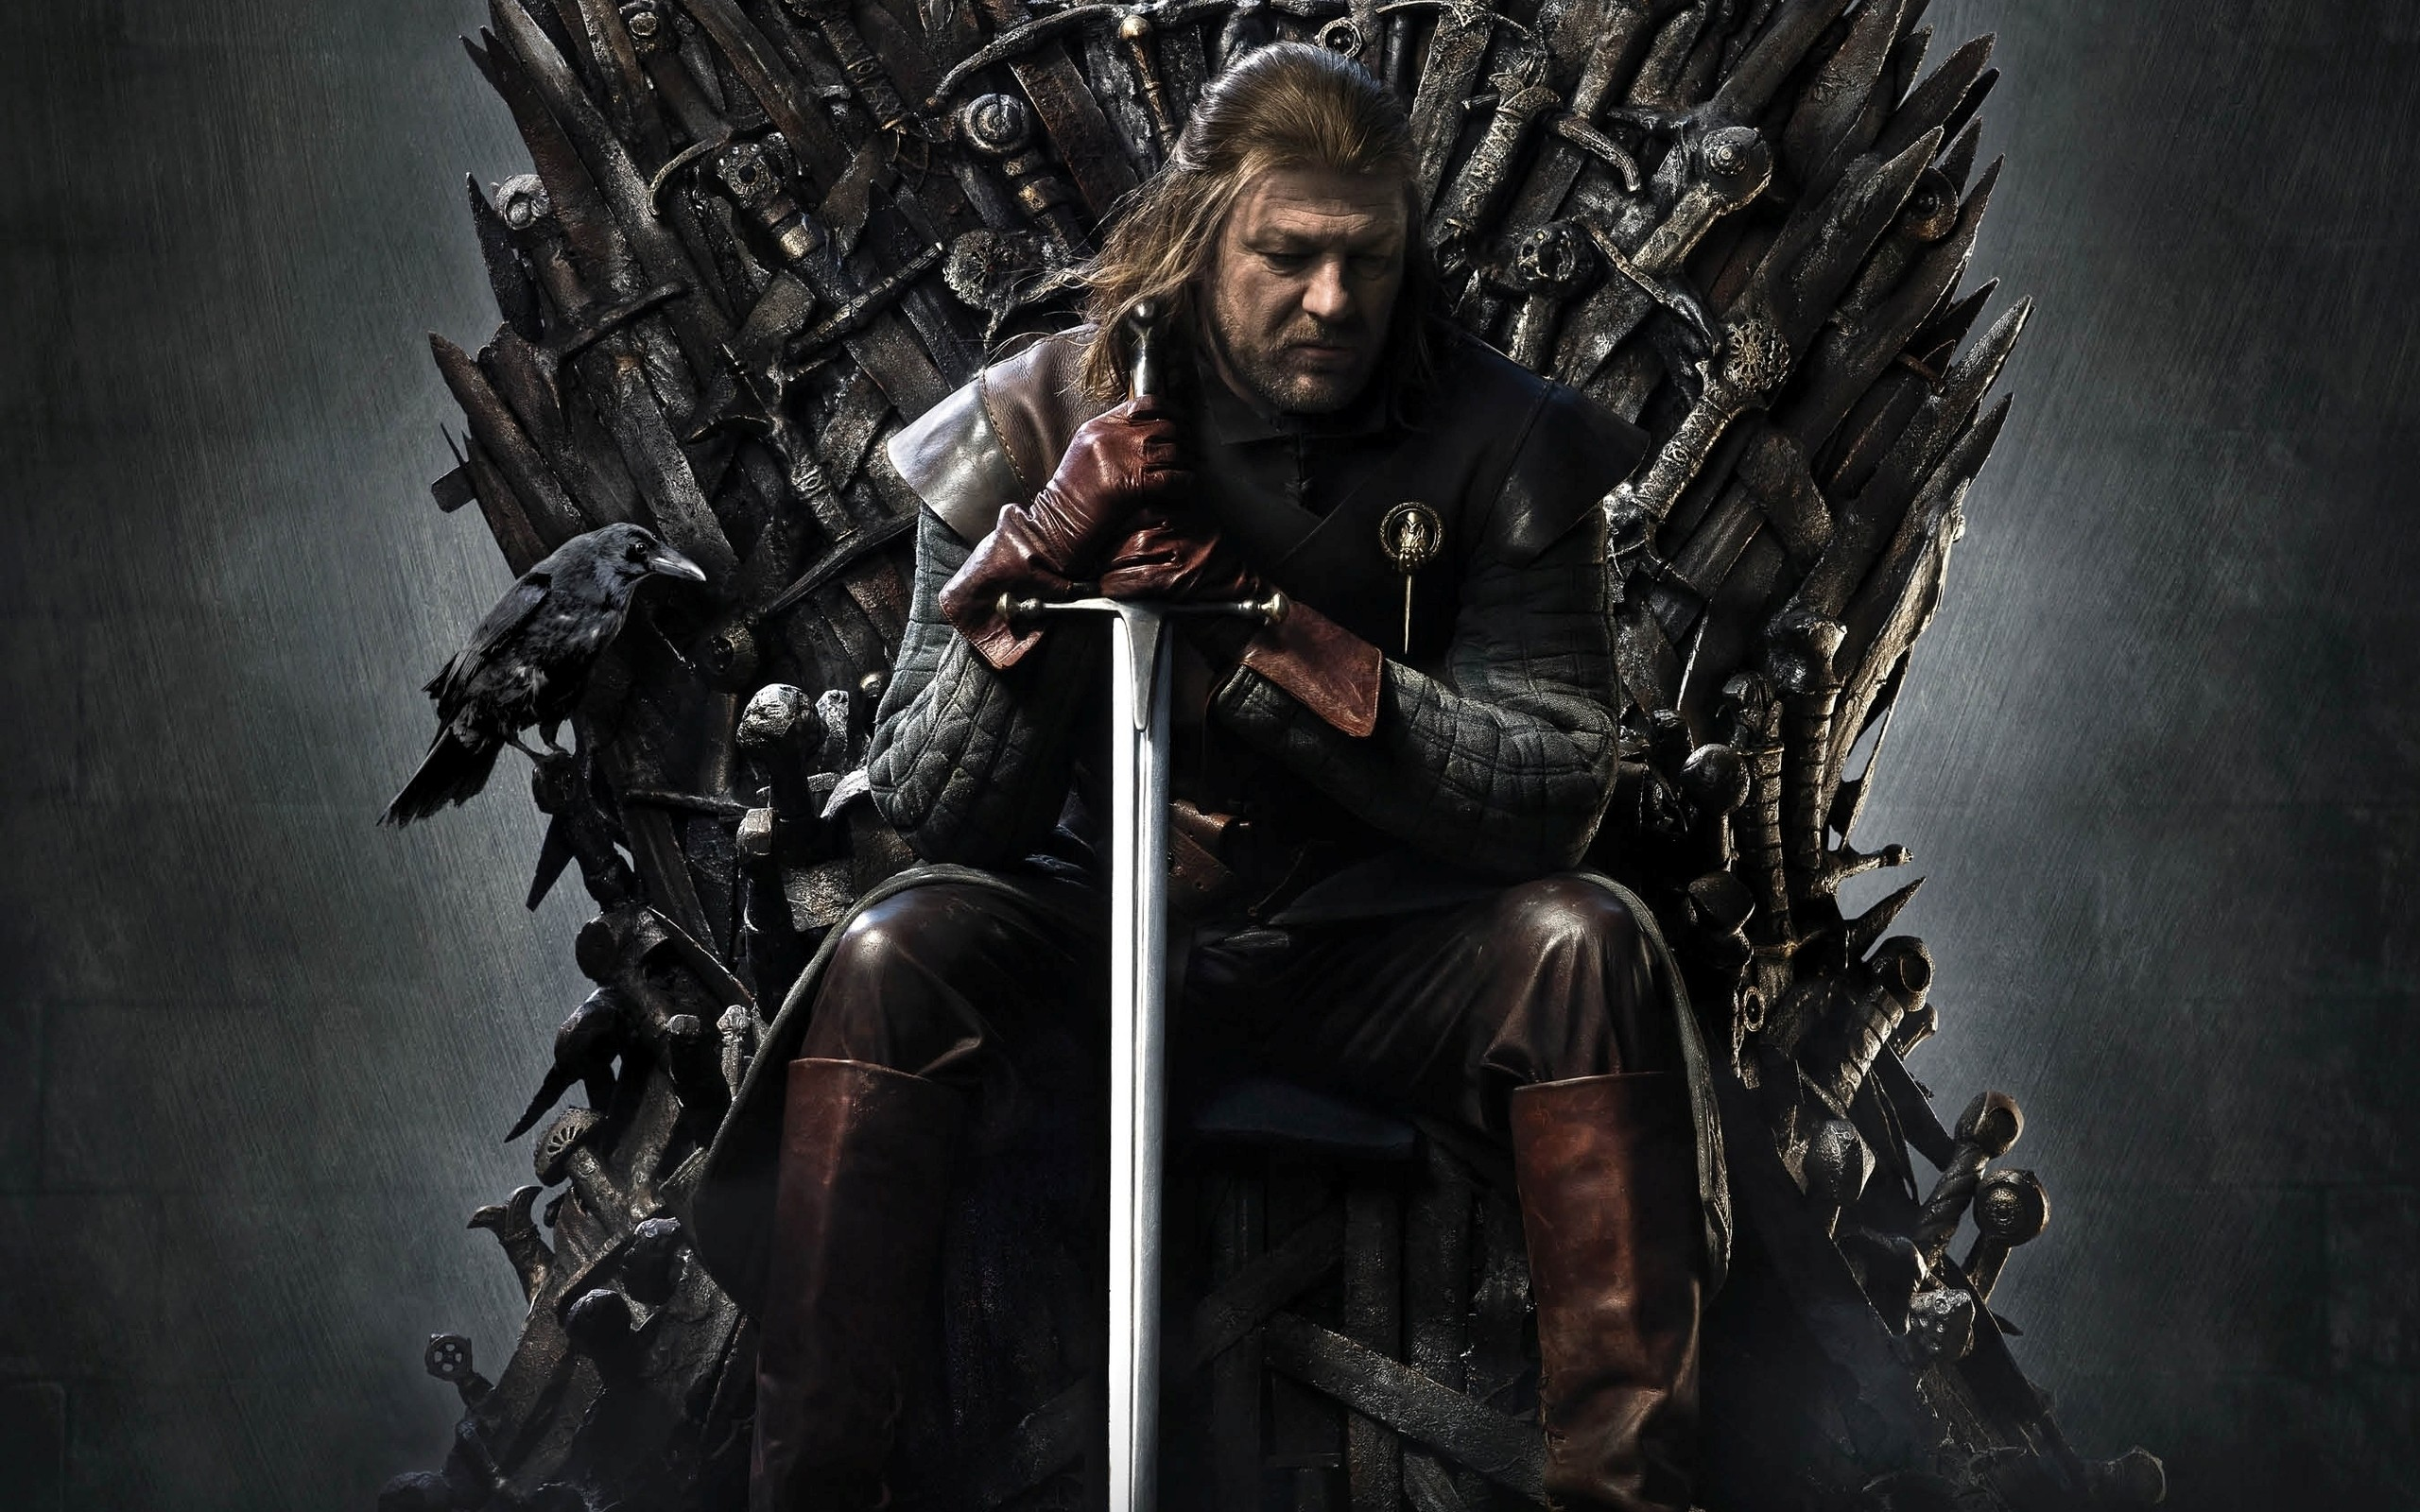 2560x1600 Free Wallpapers - Game Of Thrones Winter Is Coming wallpaper | Winter is  Coming - House of Stark | Pinterest | Gaming